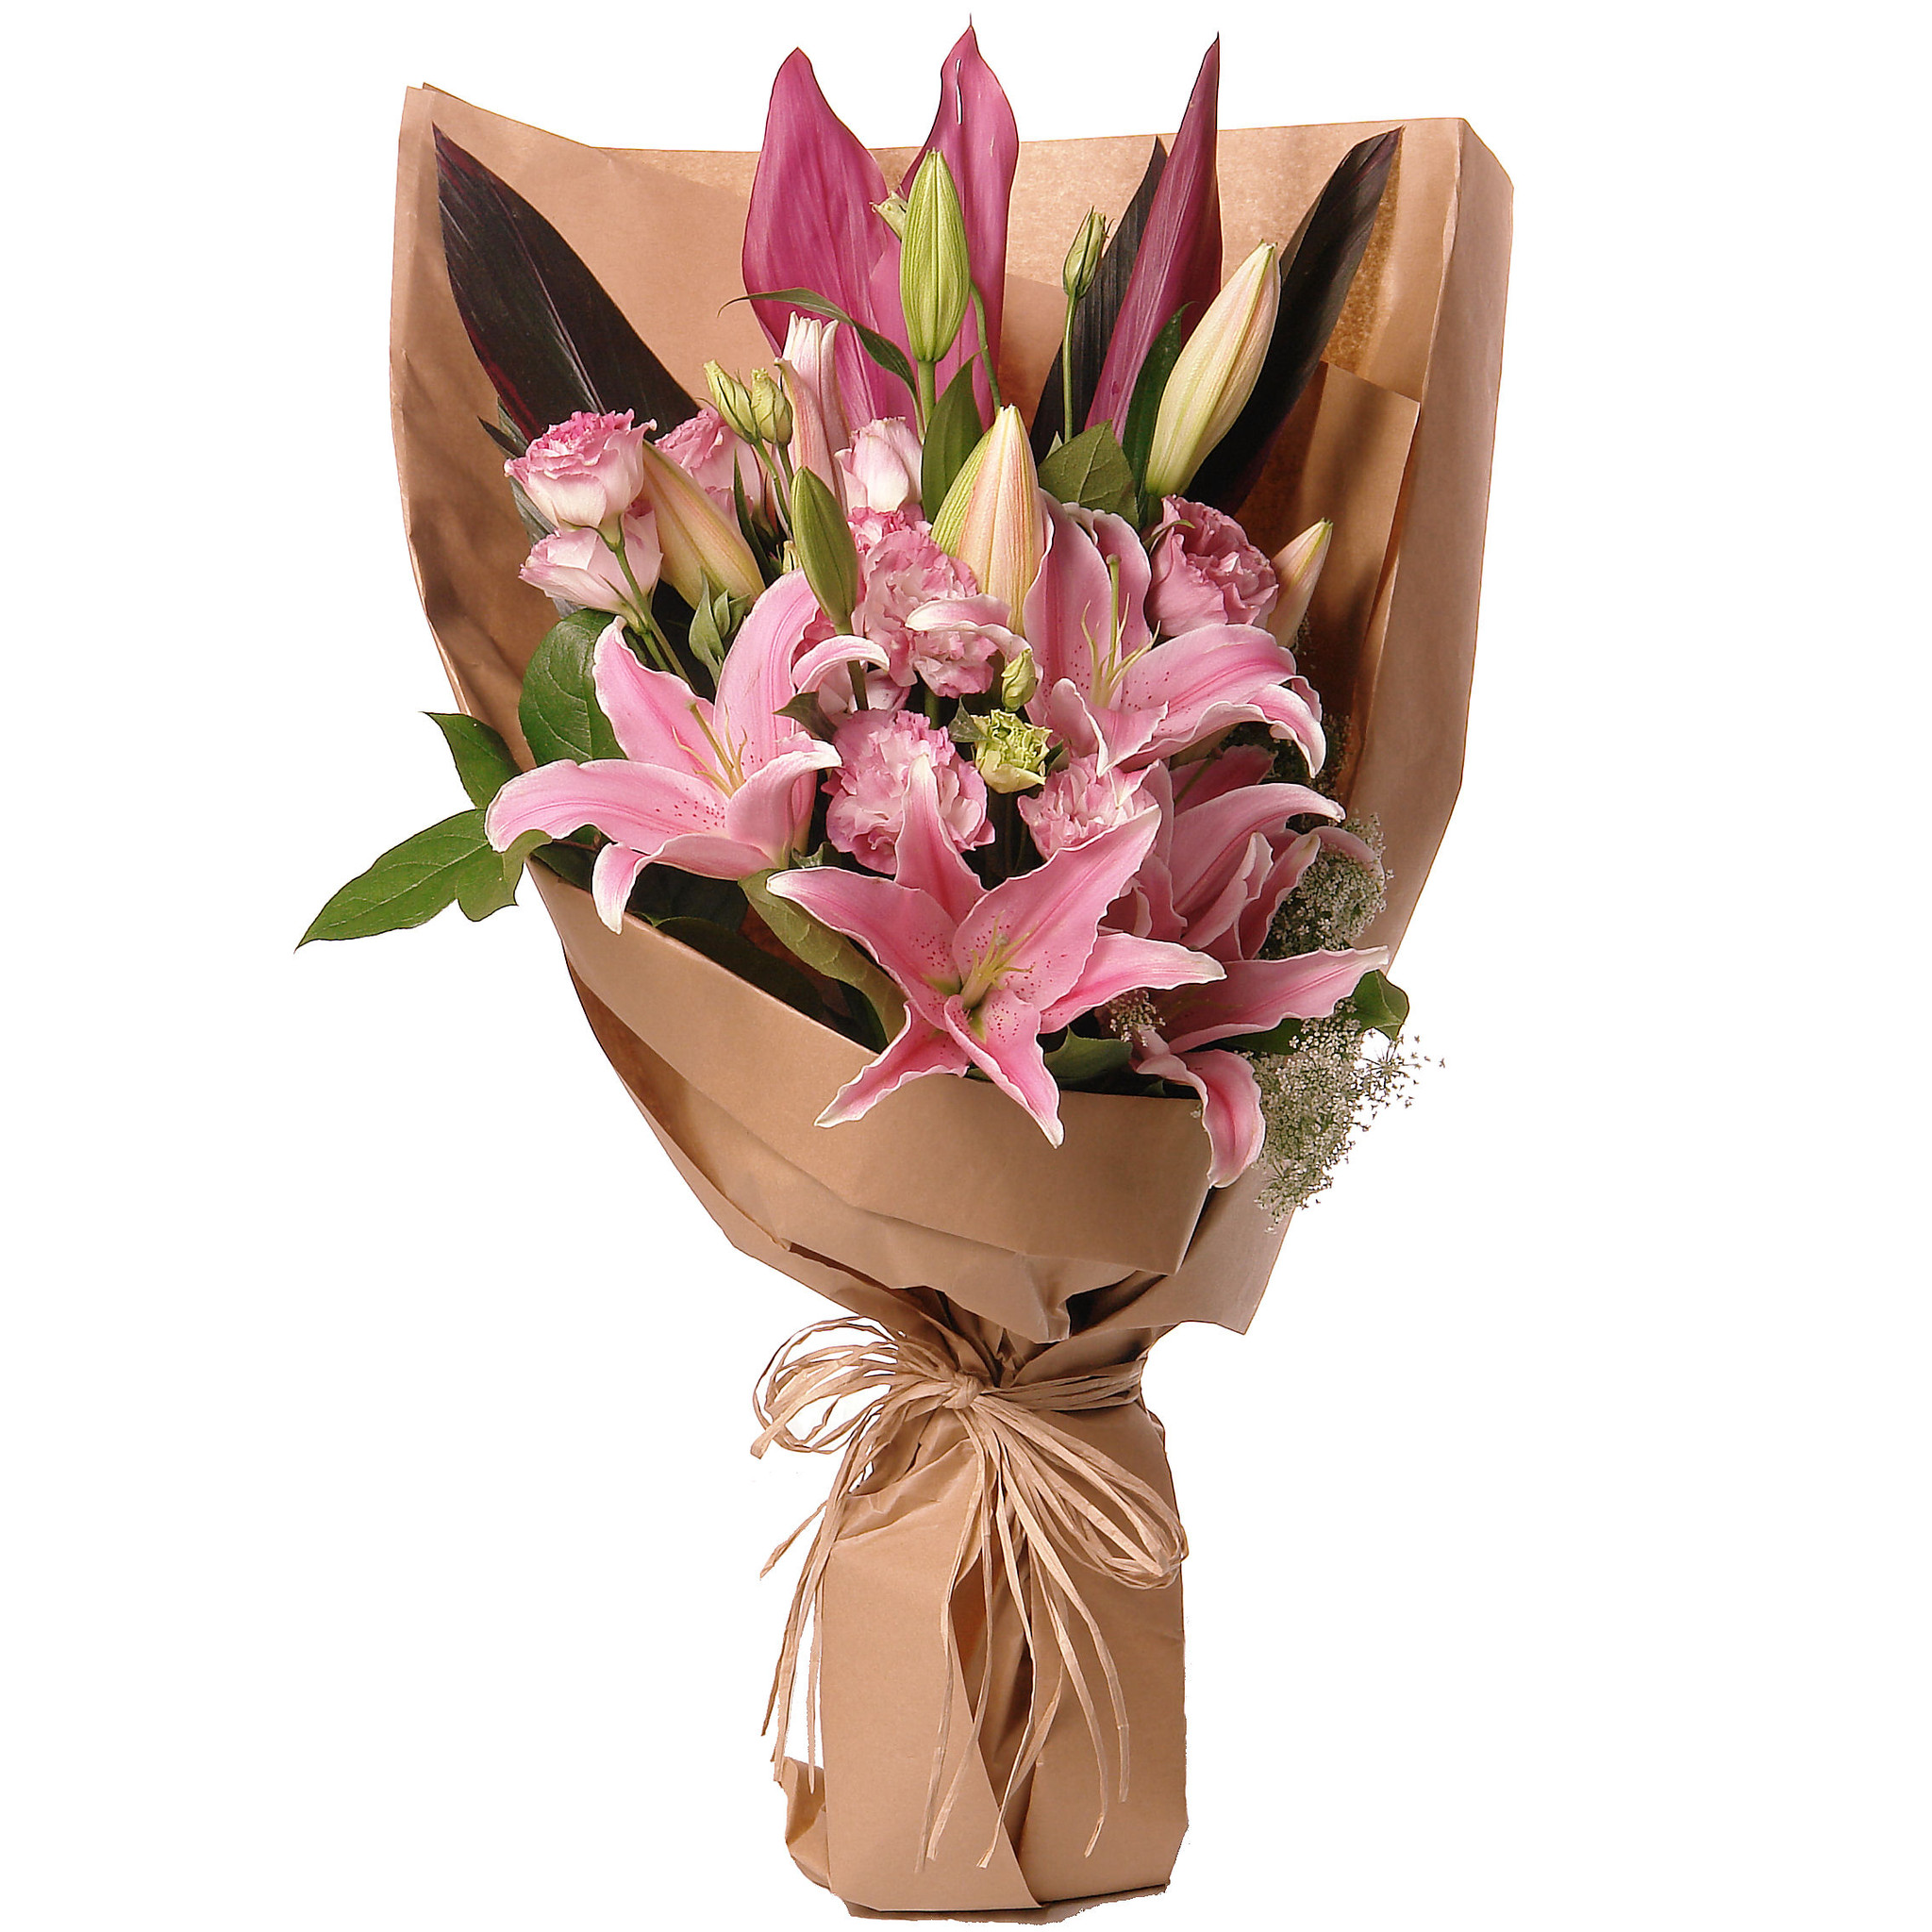 Fondest Roses & Lilies